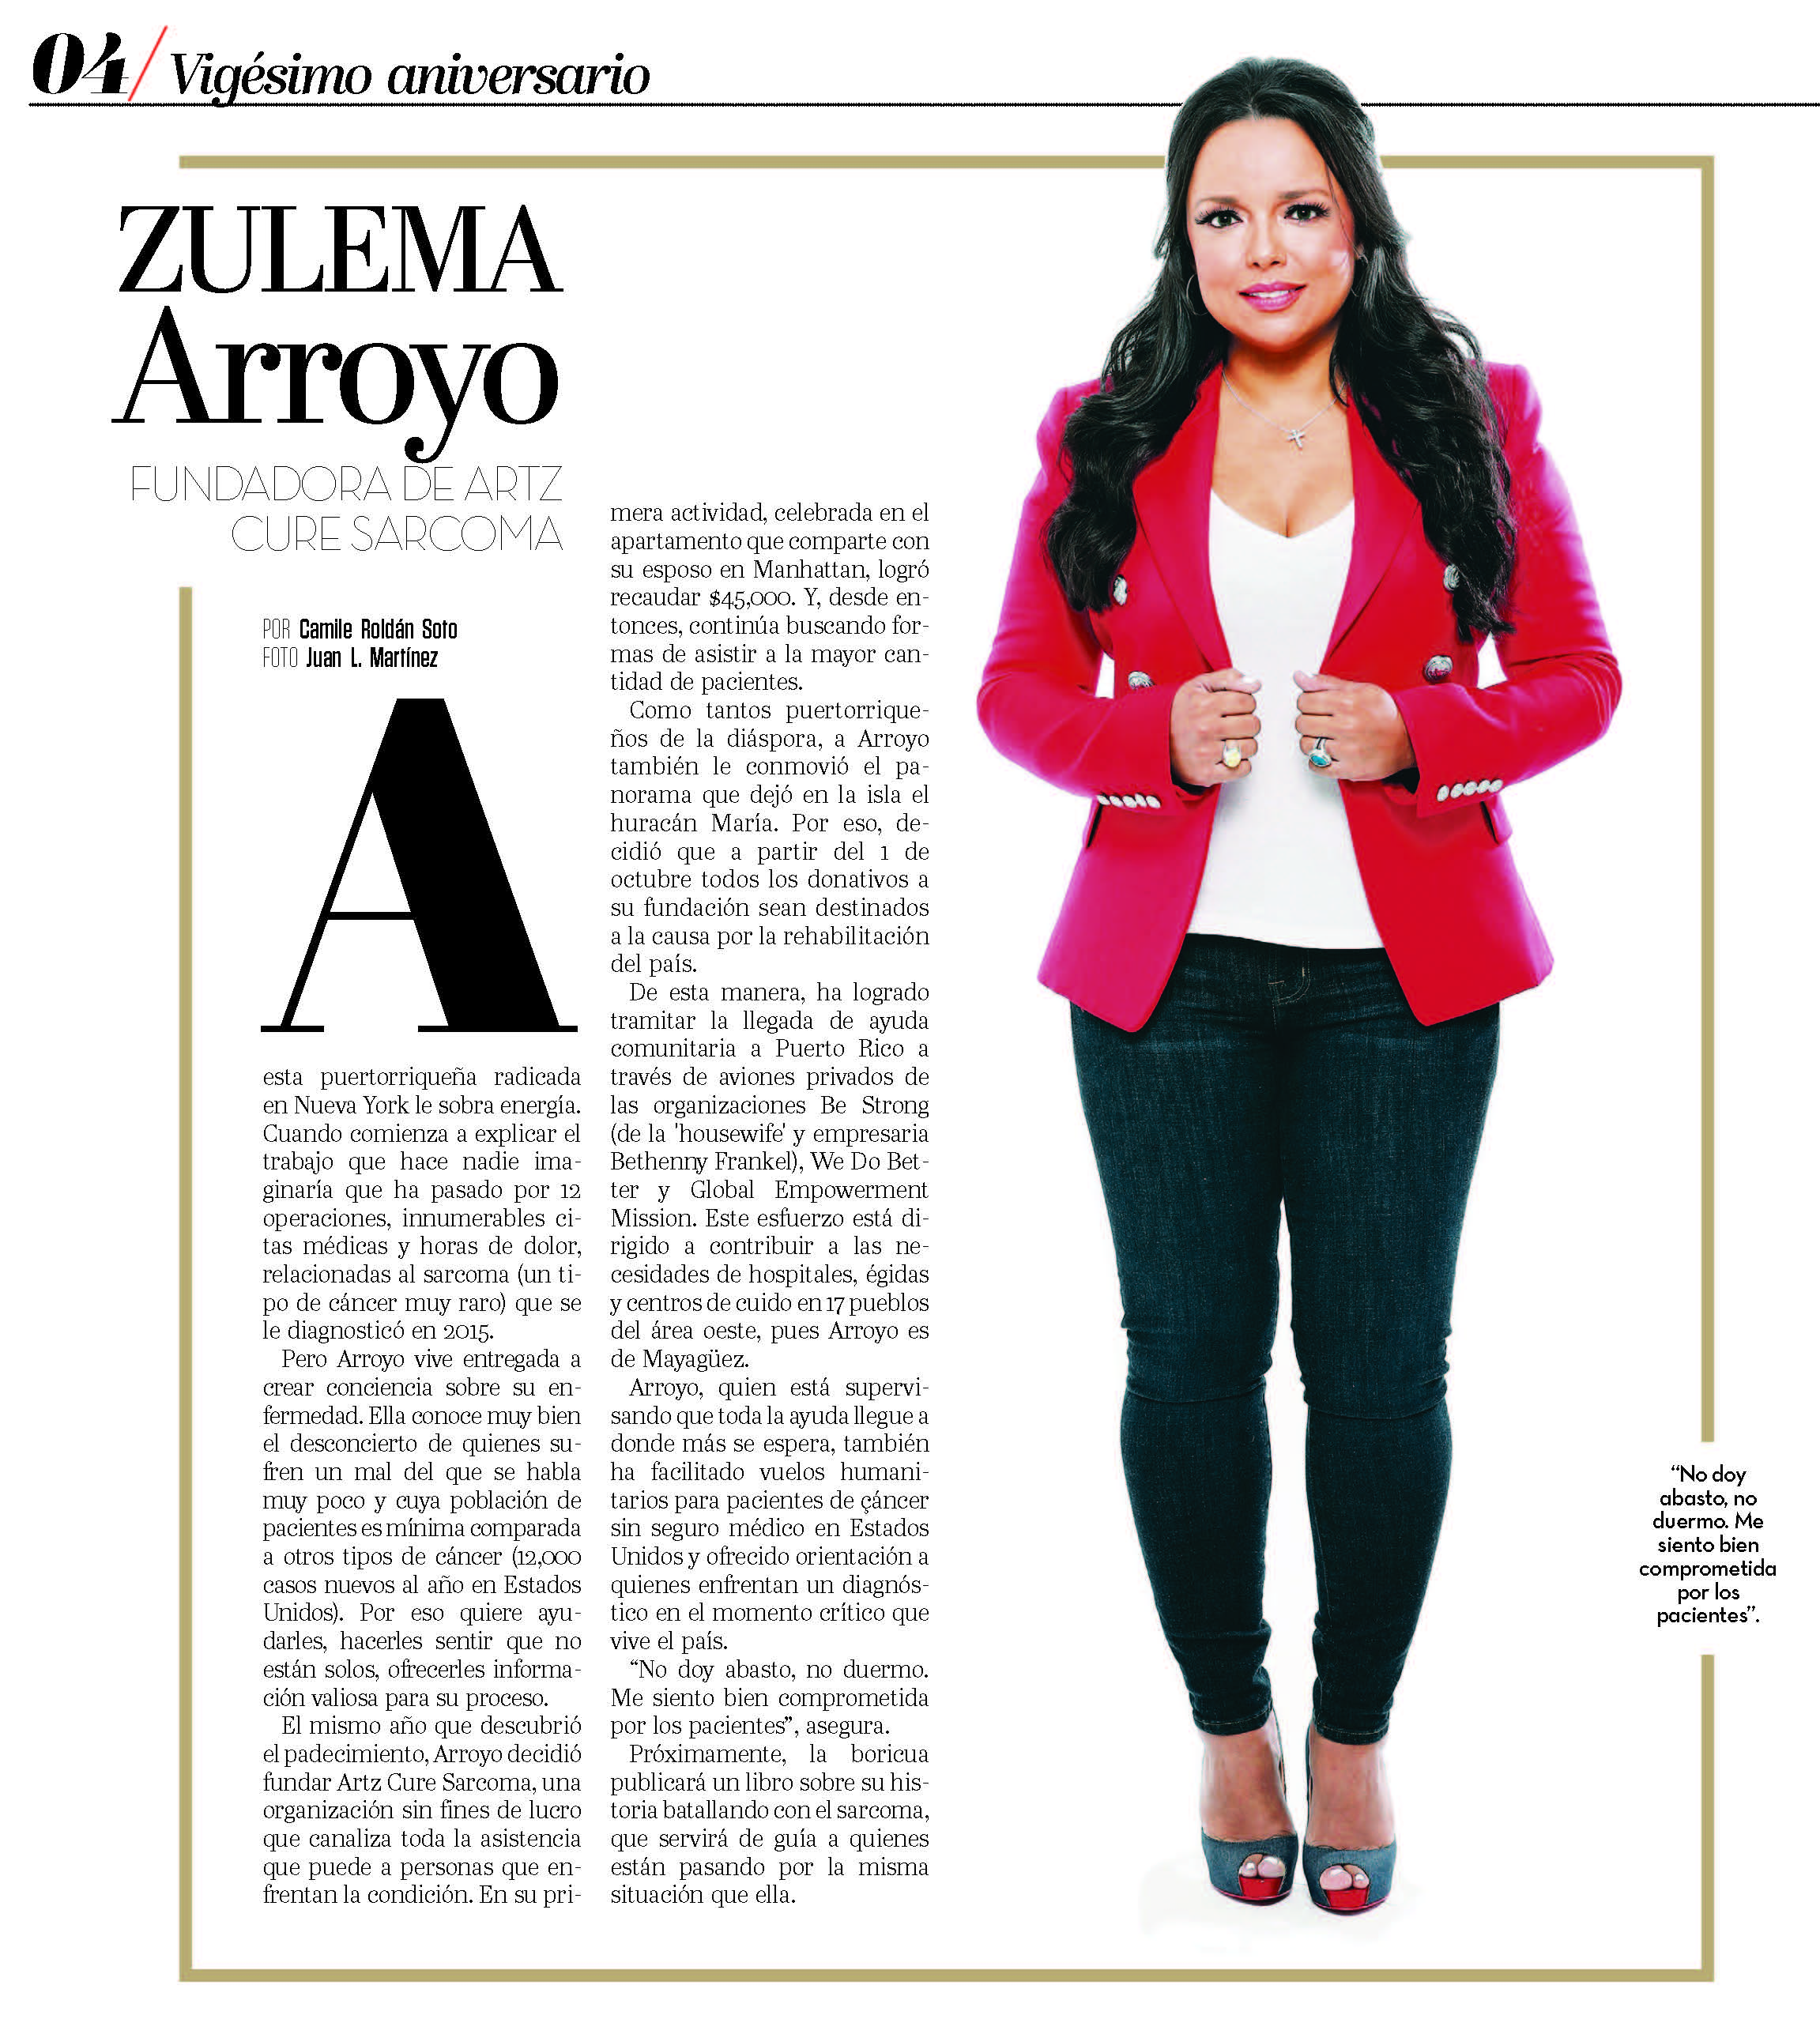 Zulema Arroyo Farley, Magacín Puerto Rico 20th Anniversary issue highlighting the 20 Puerto Rican women influential in the hurricane relief efforts.